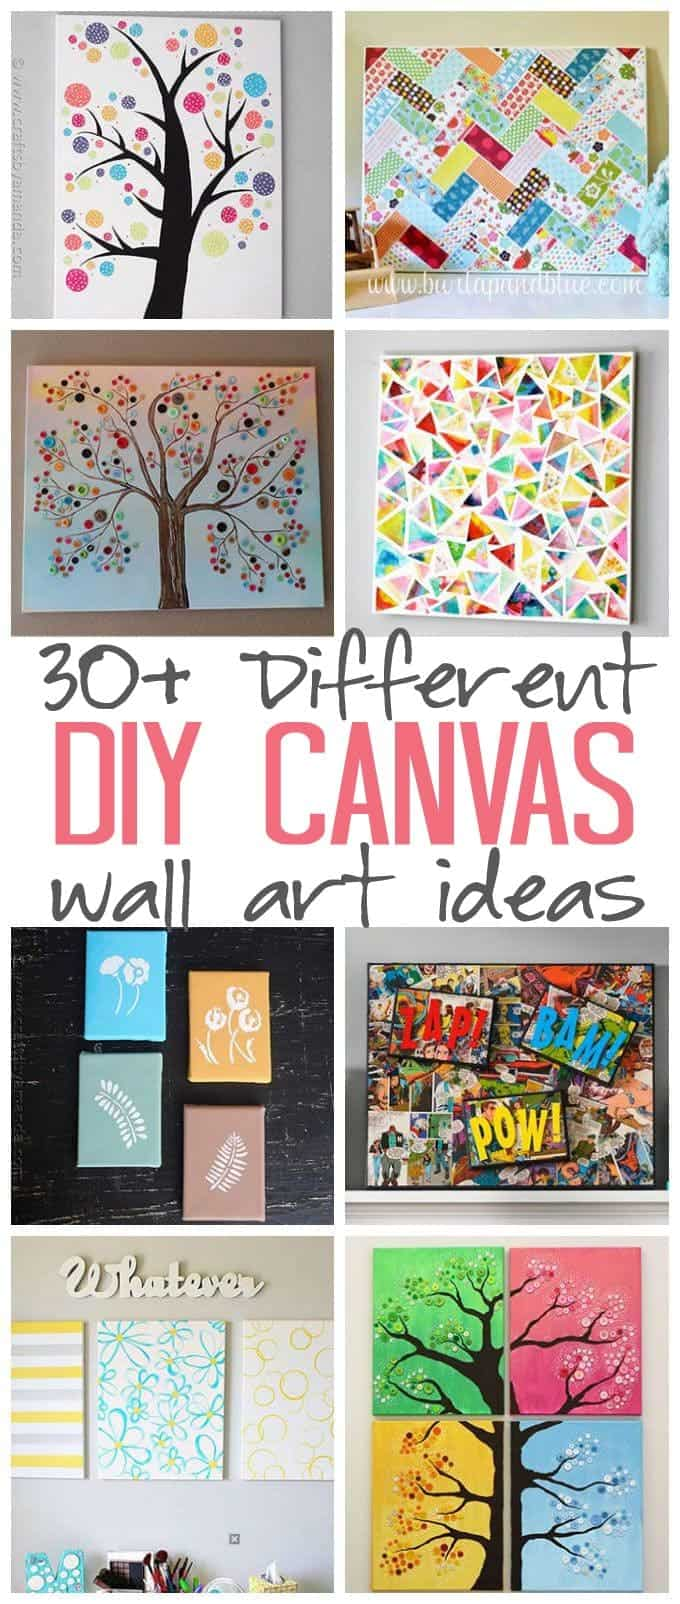 Diy canvas wall art ideas 30 canvas tutorials for Pinterest art ideas for adults